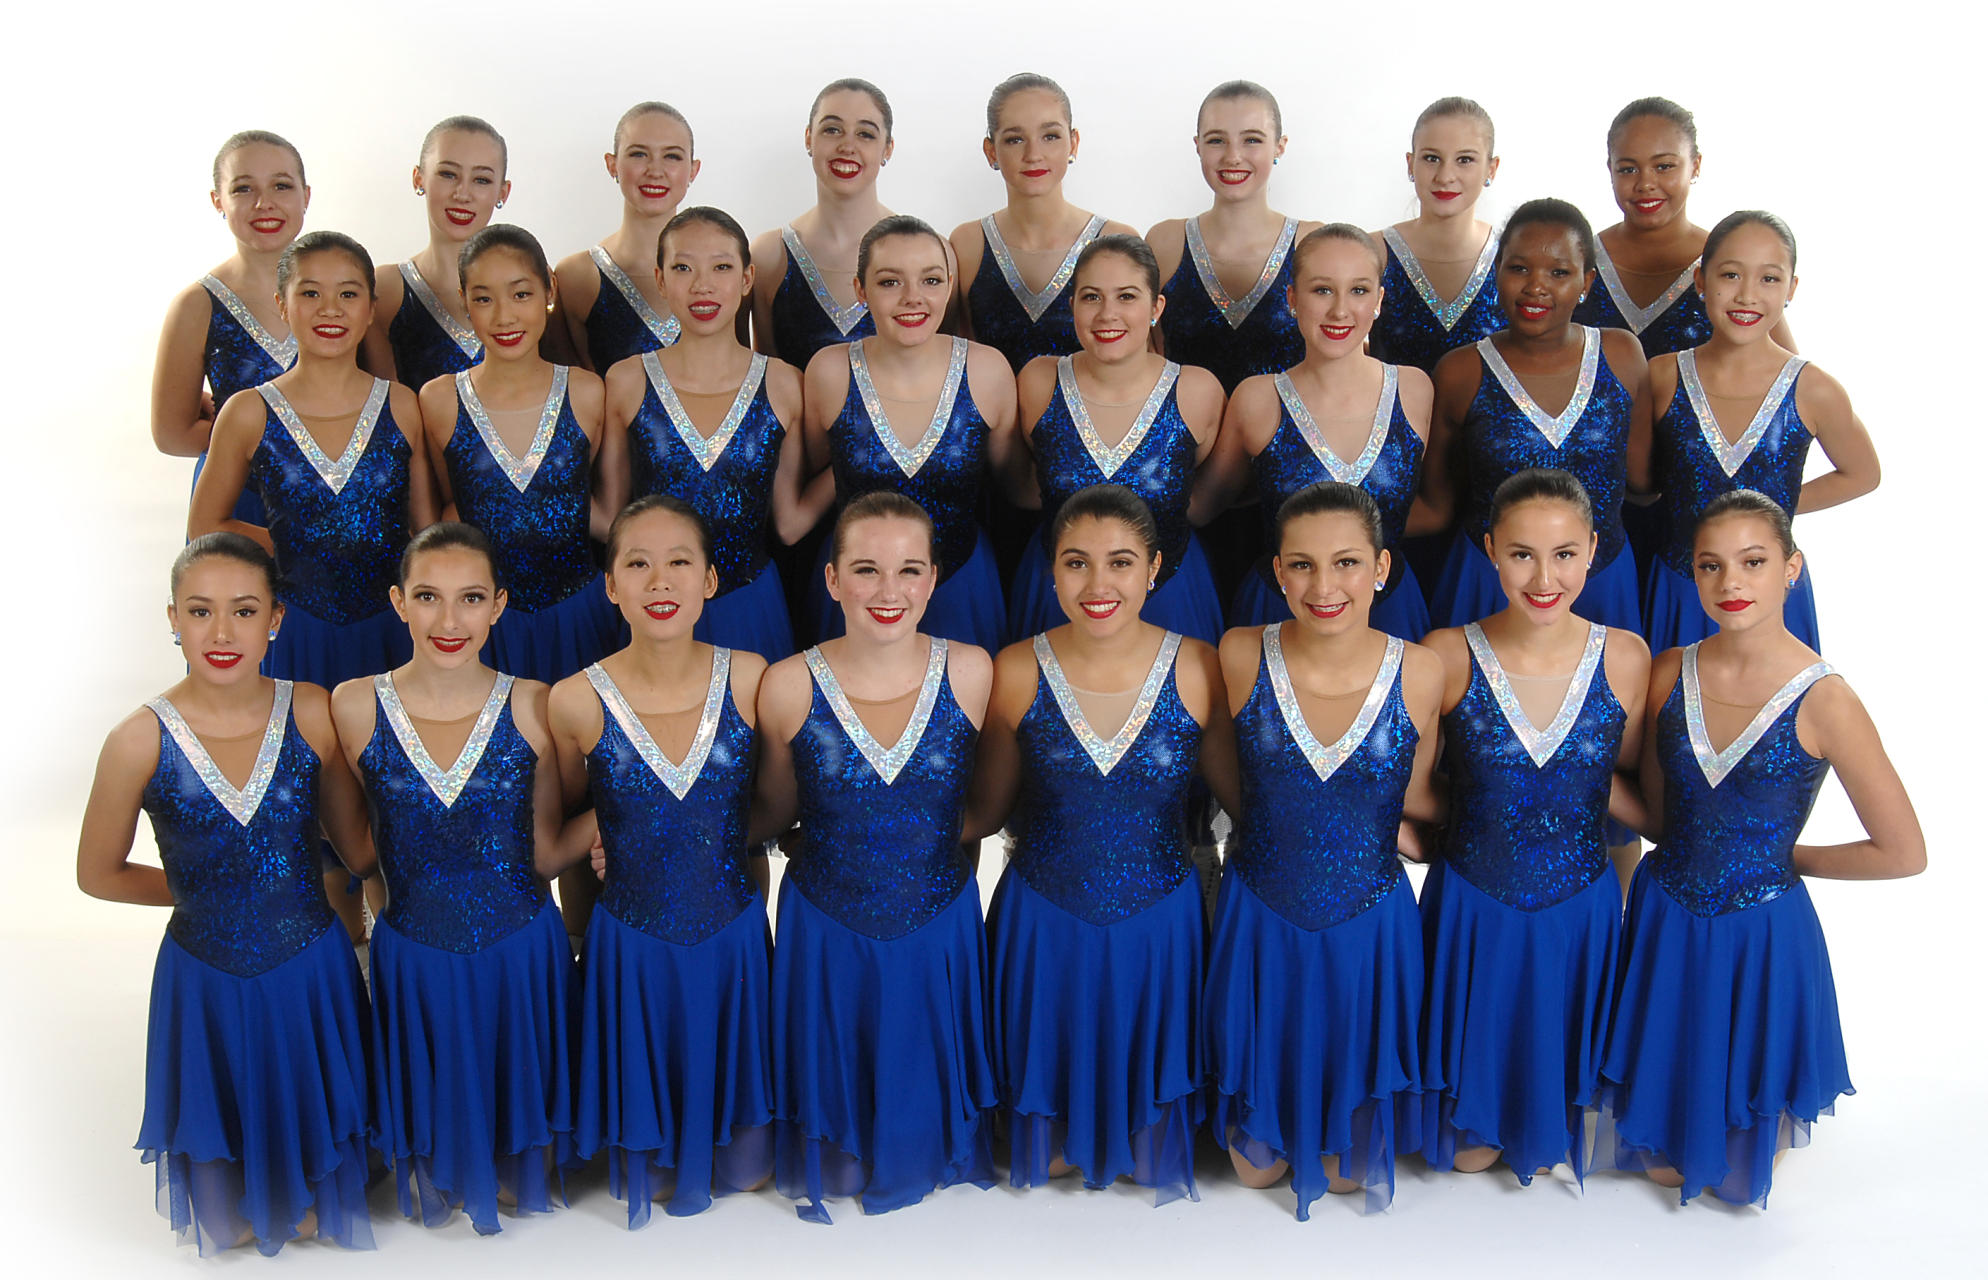 The 2018-19 Skyliners Intermediate line is the 2018 Richard Porter Synchro Classic champion, 2018 Boston Synchro Classic bronze medalist, and 2019 Colonial Classic pewter medalist. The line won Nationals in 2016 and 2017.